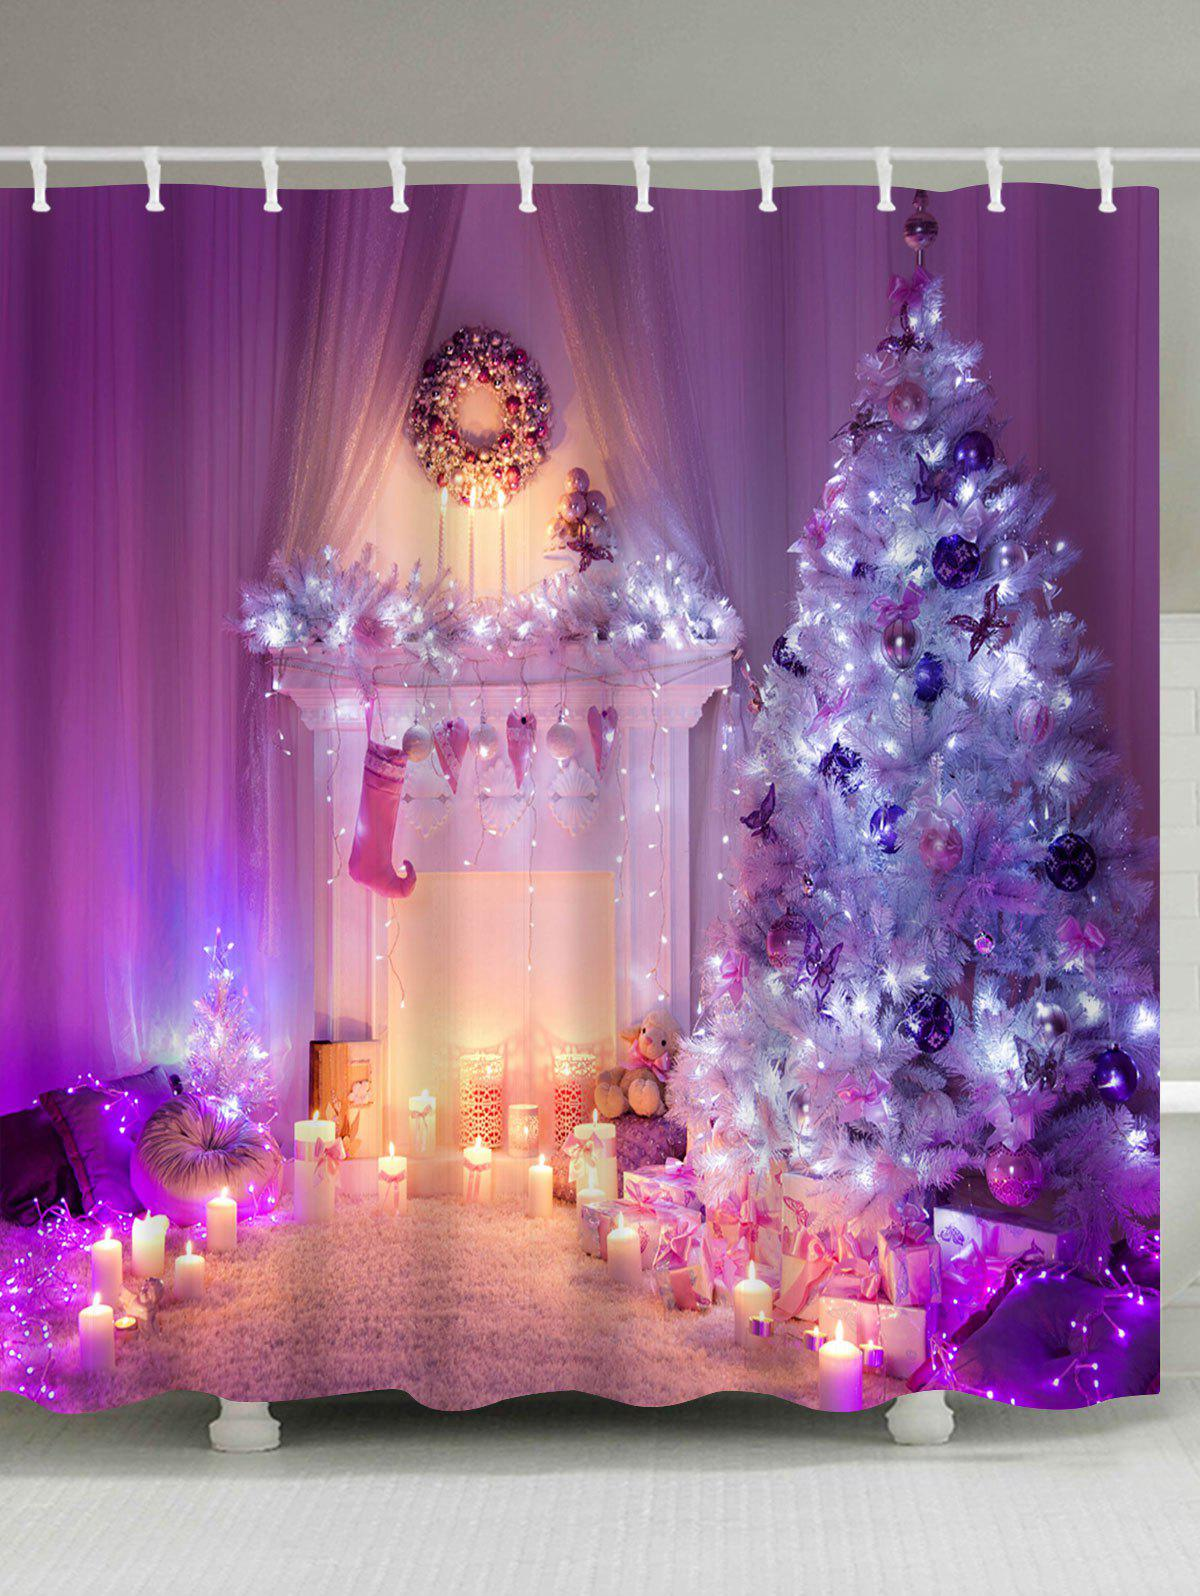 Christmas Tree Fireplace Print Waterproof Shower CurtainHOME<br><br>Size: W59 INCH * L71 INCH; Color: PURPLE; Products Type: Shower Curtains; Materials: Polyester; Pattern: Christmas Tree; Style: Festival; Number of Hook Holes: W59 inch*L71 inch: 10; W71 inch*L71 inch: 12; W71 inch*L79 inch: 12; Package Contents: 1 x Shower Curtain 1 x Hooks (Set);